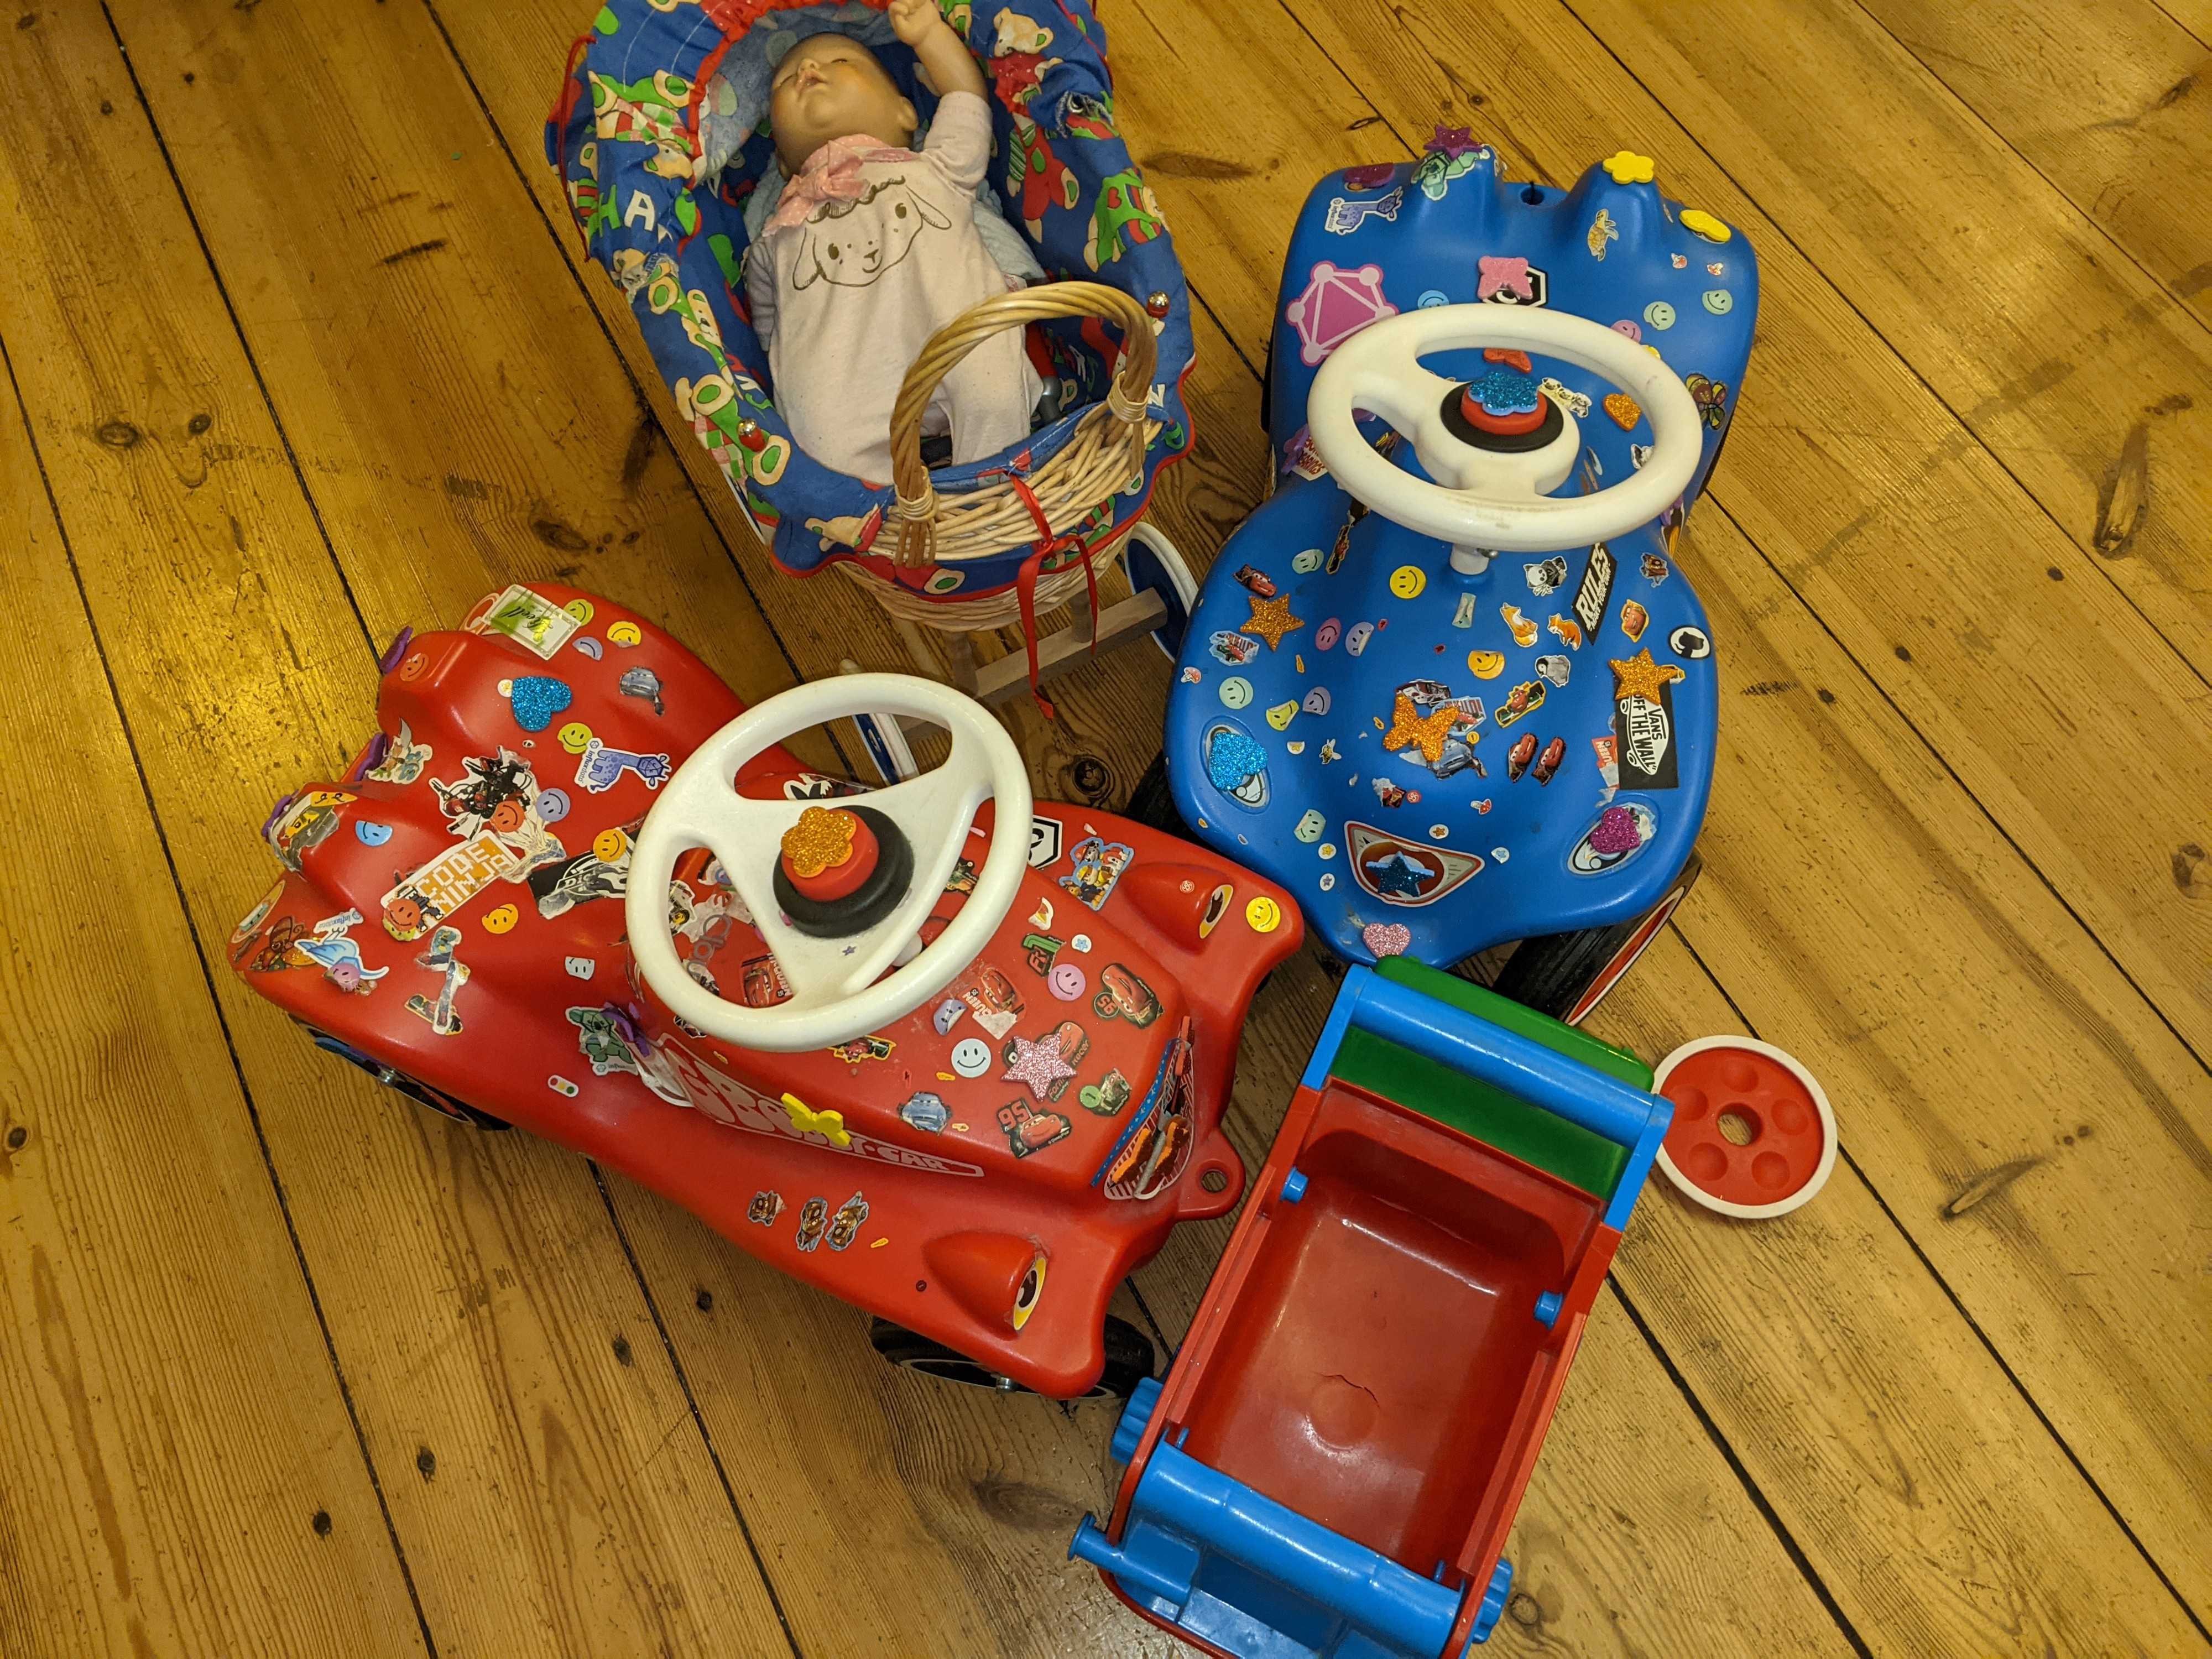 Toy cars and a toy baby carriage which have all run into each other.